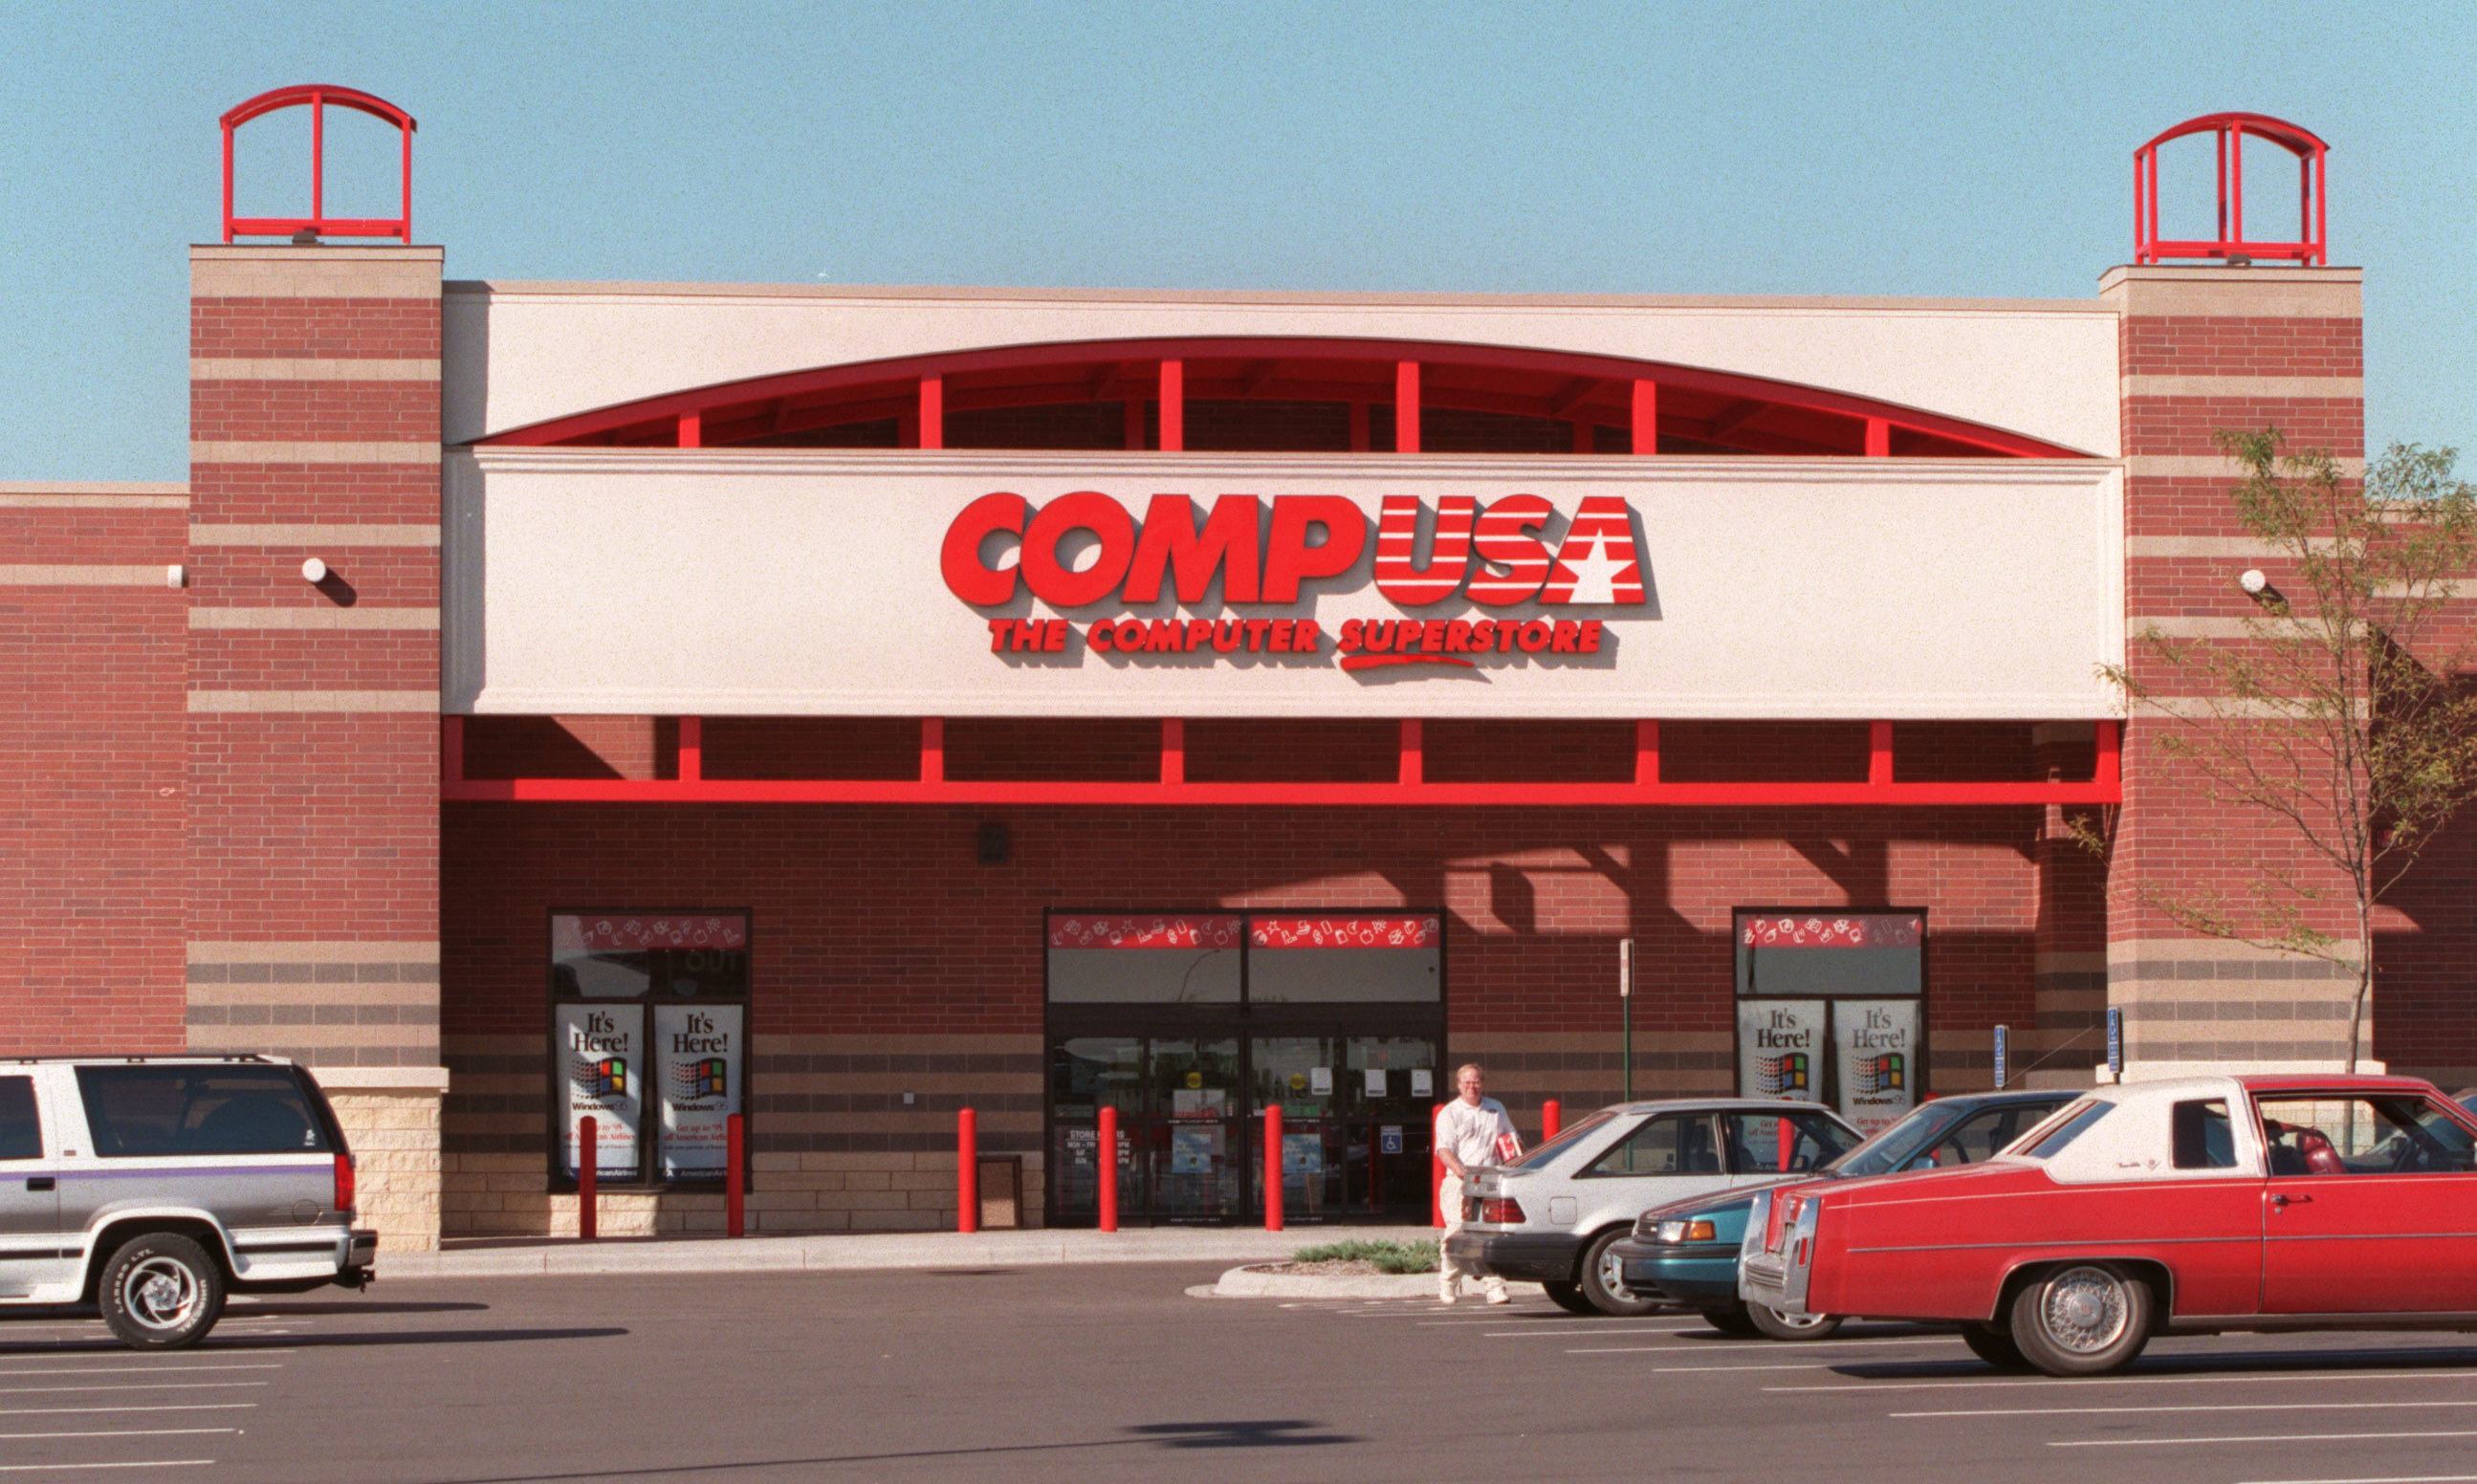 A CompUSA store with red exterior in the mid-'90s